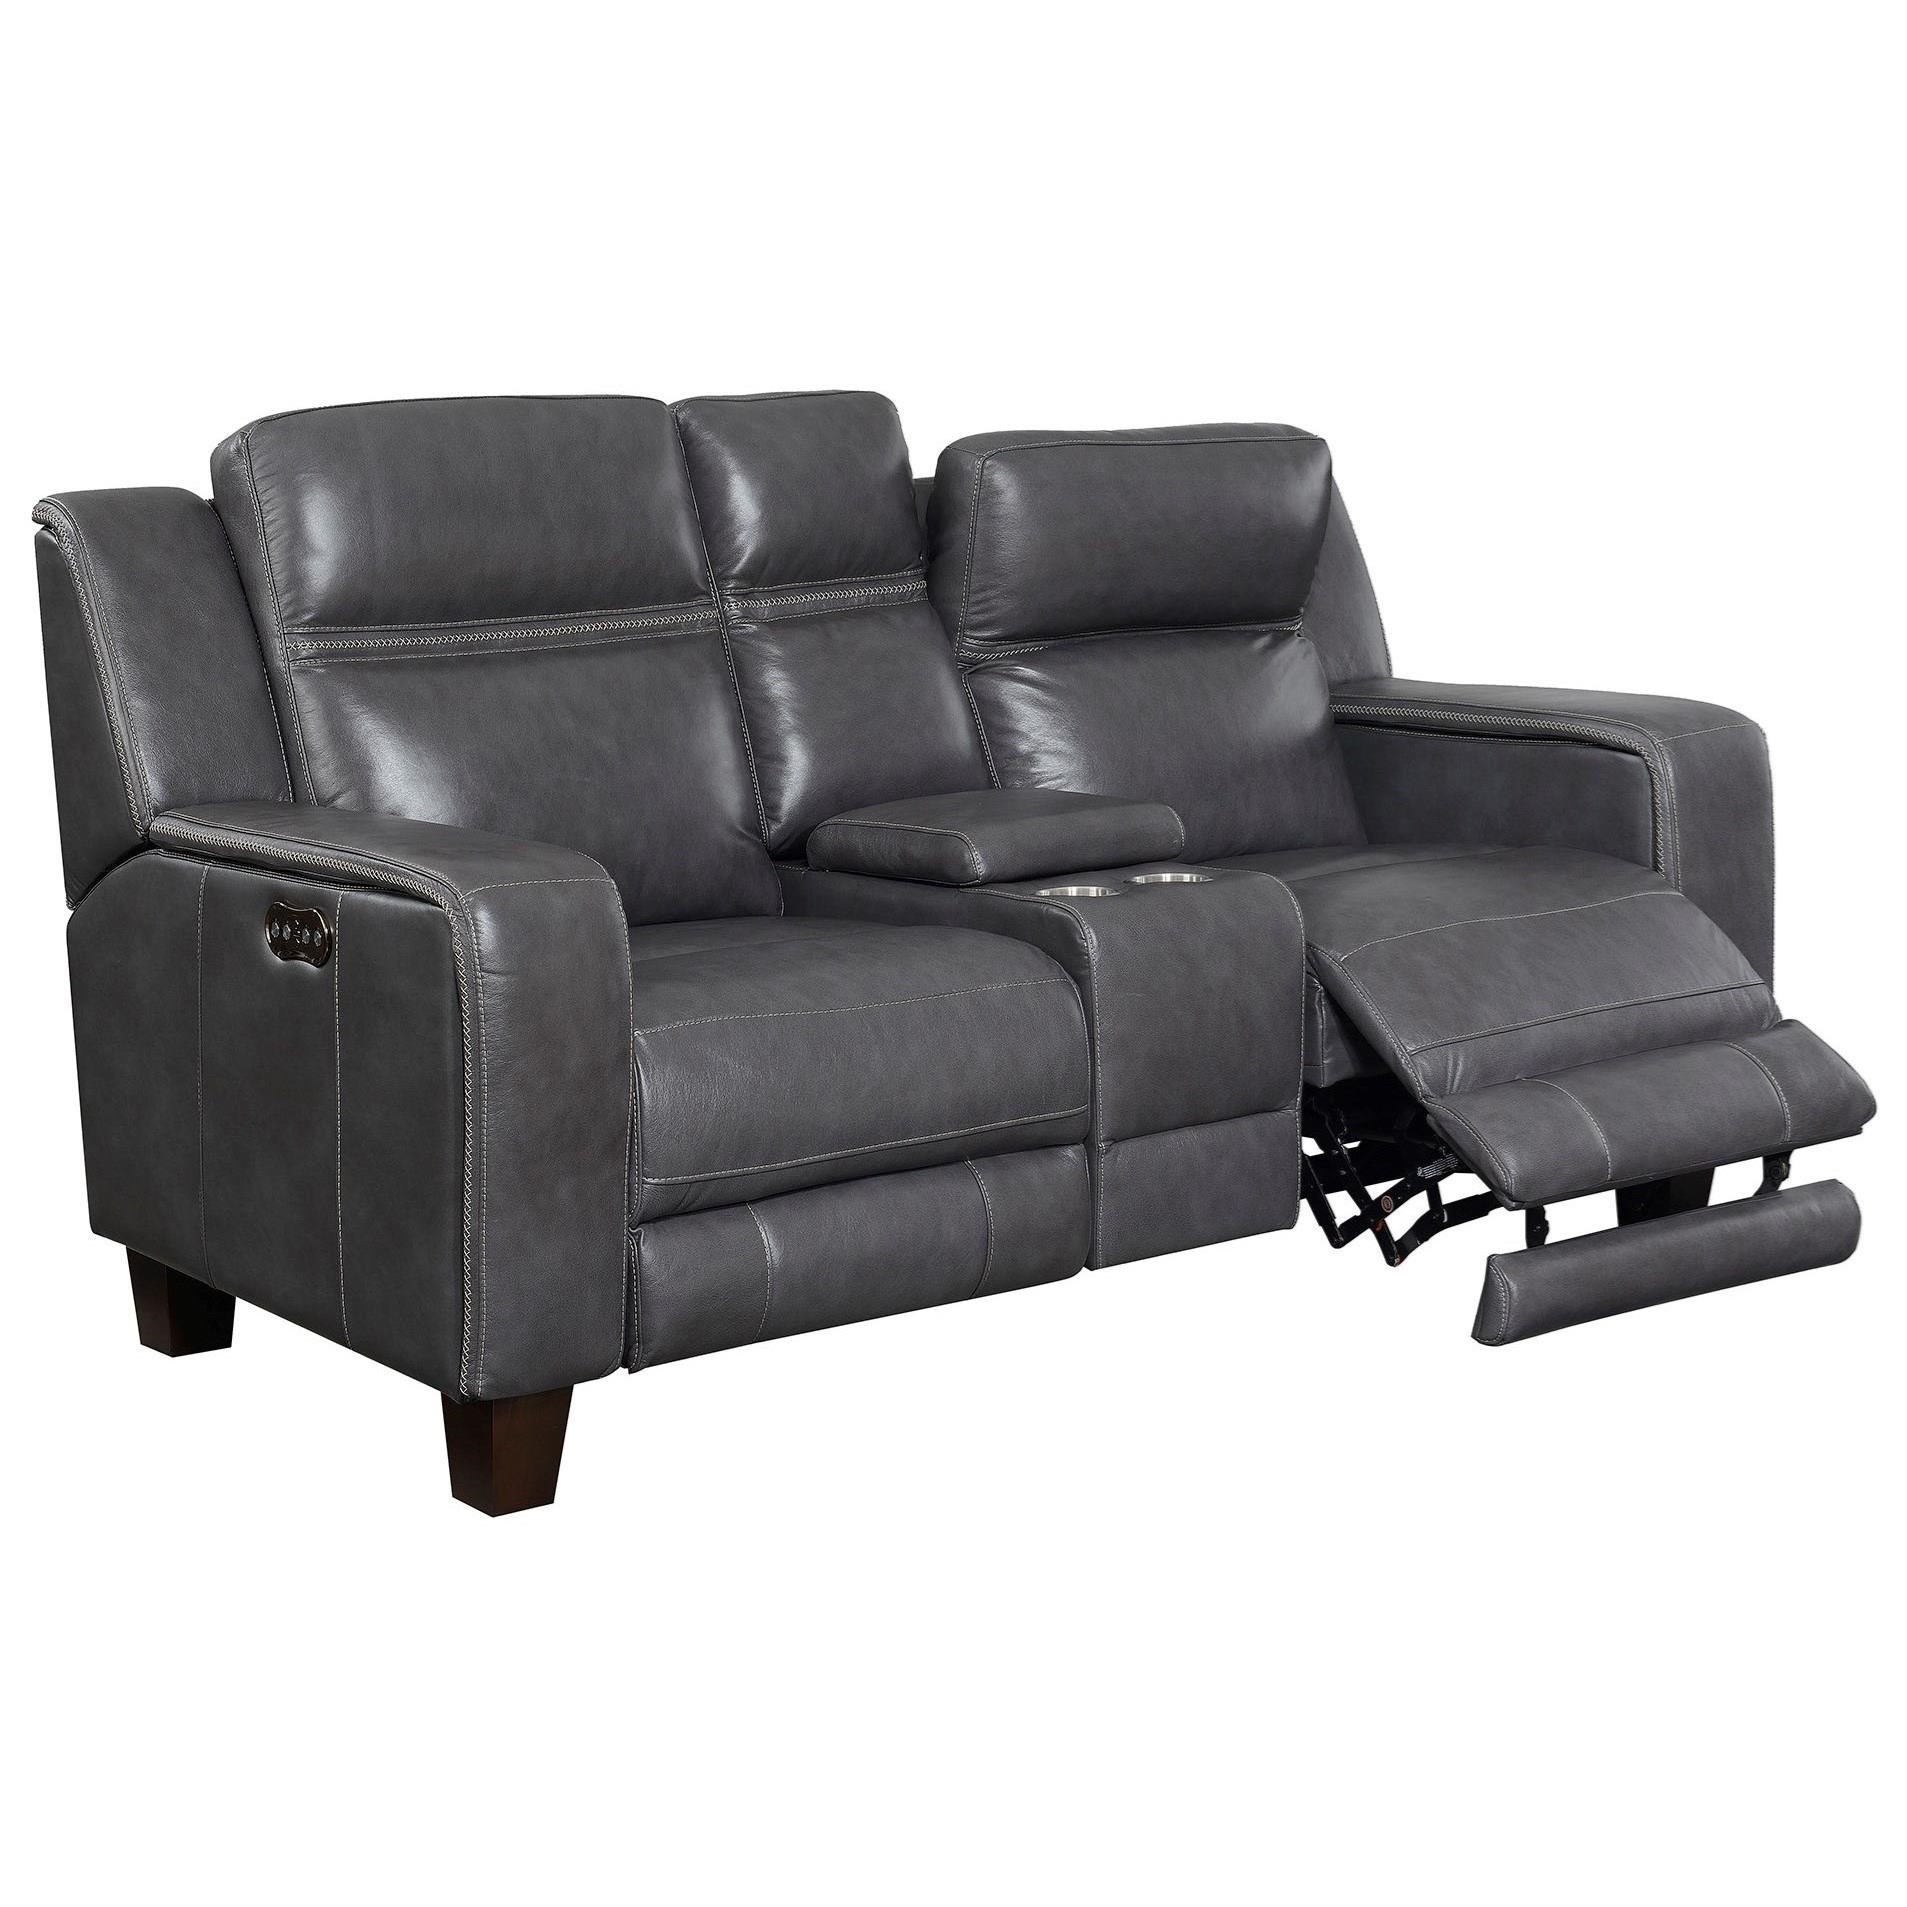 Power Console Loveseat W/2 Power Headrests